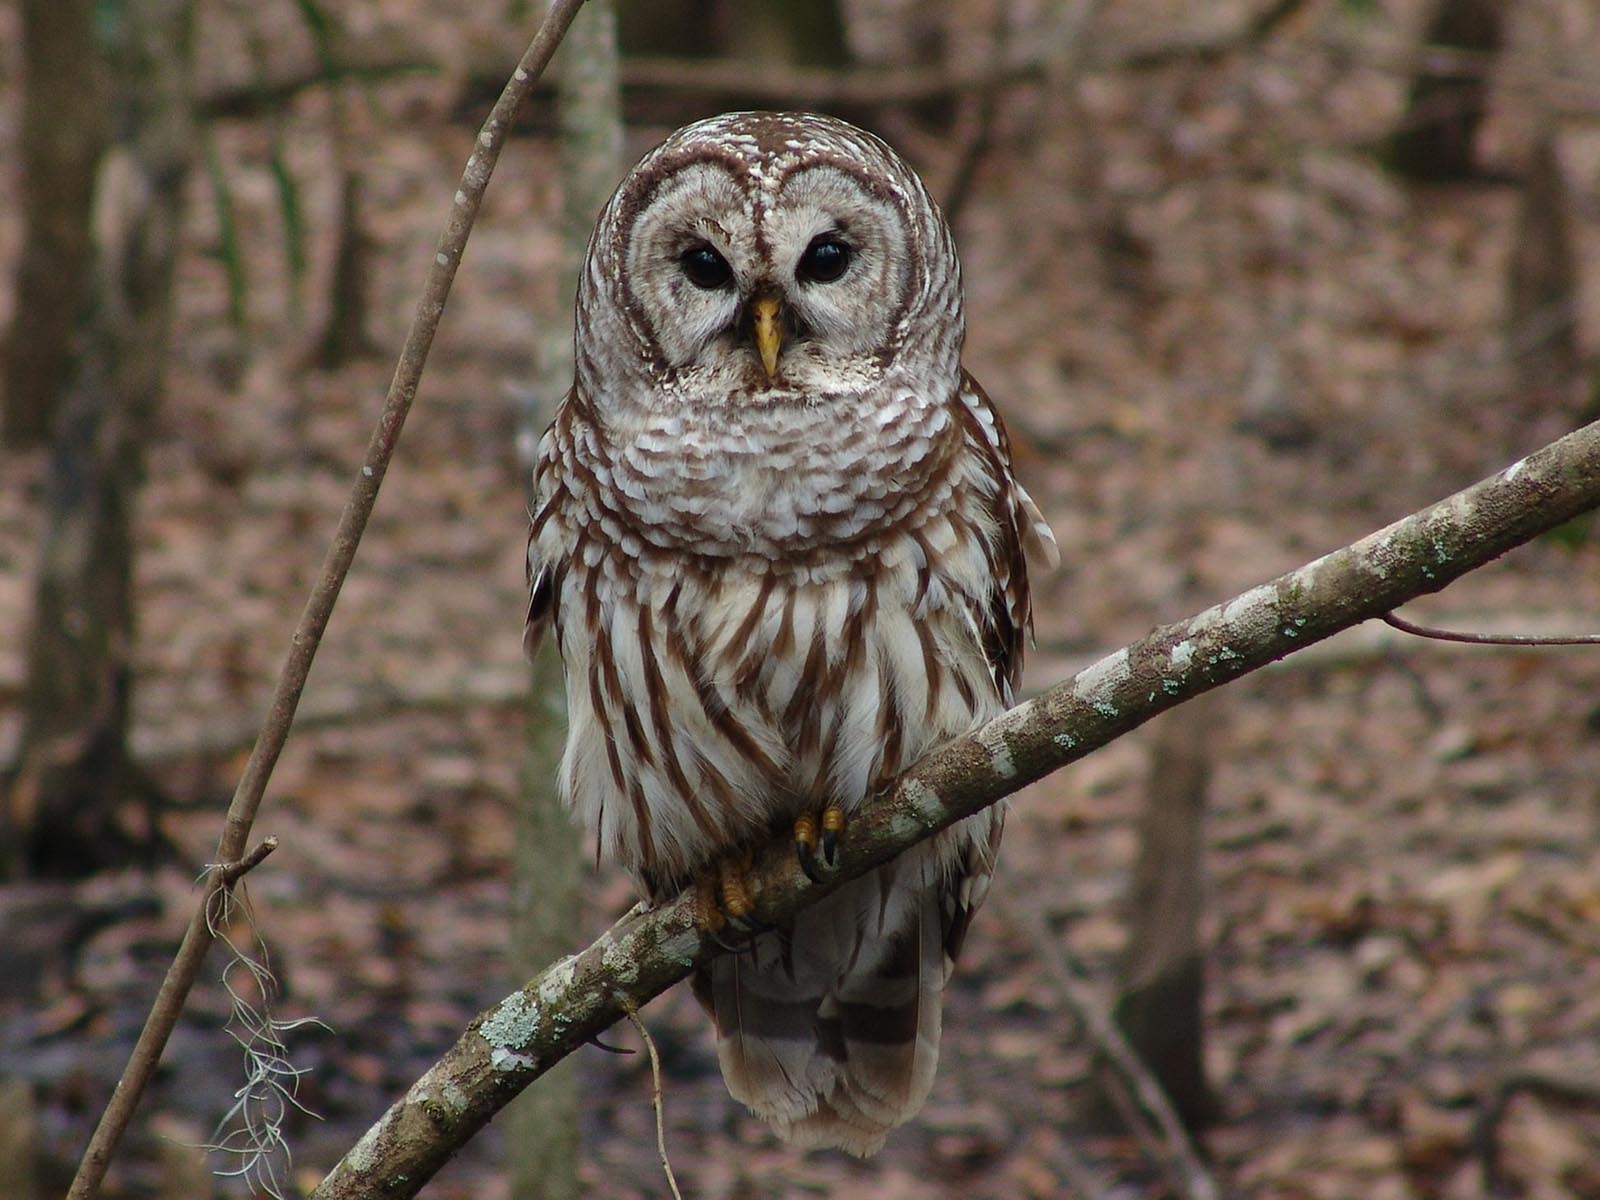 Barred Owl | Photo Credit: Skeeze